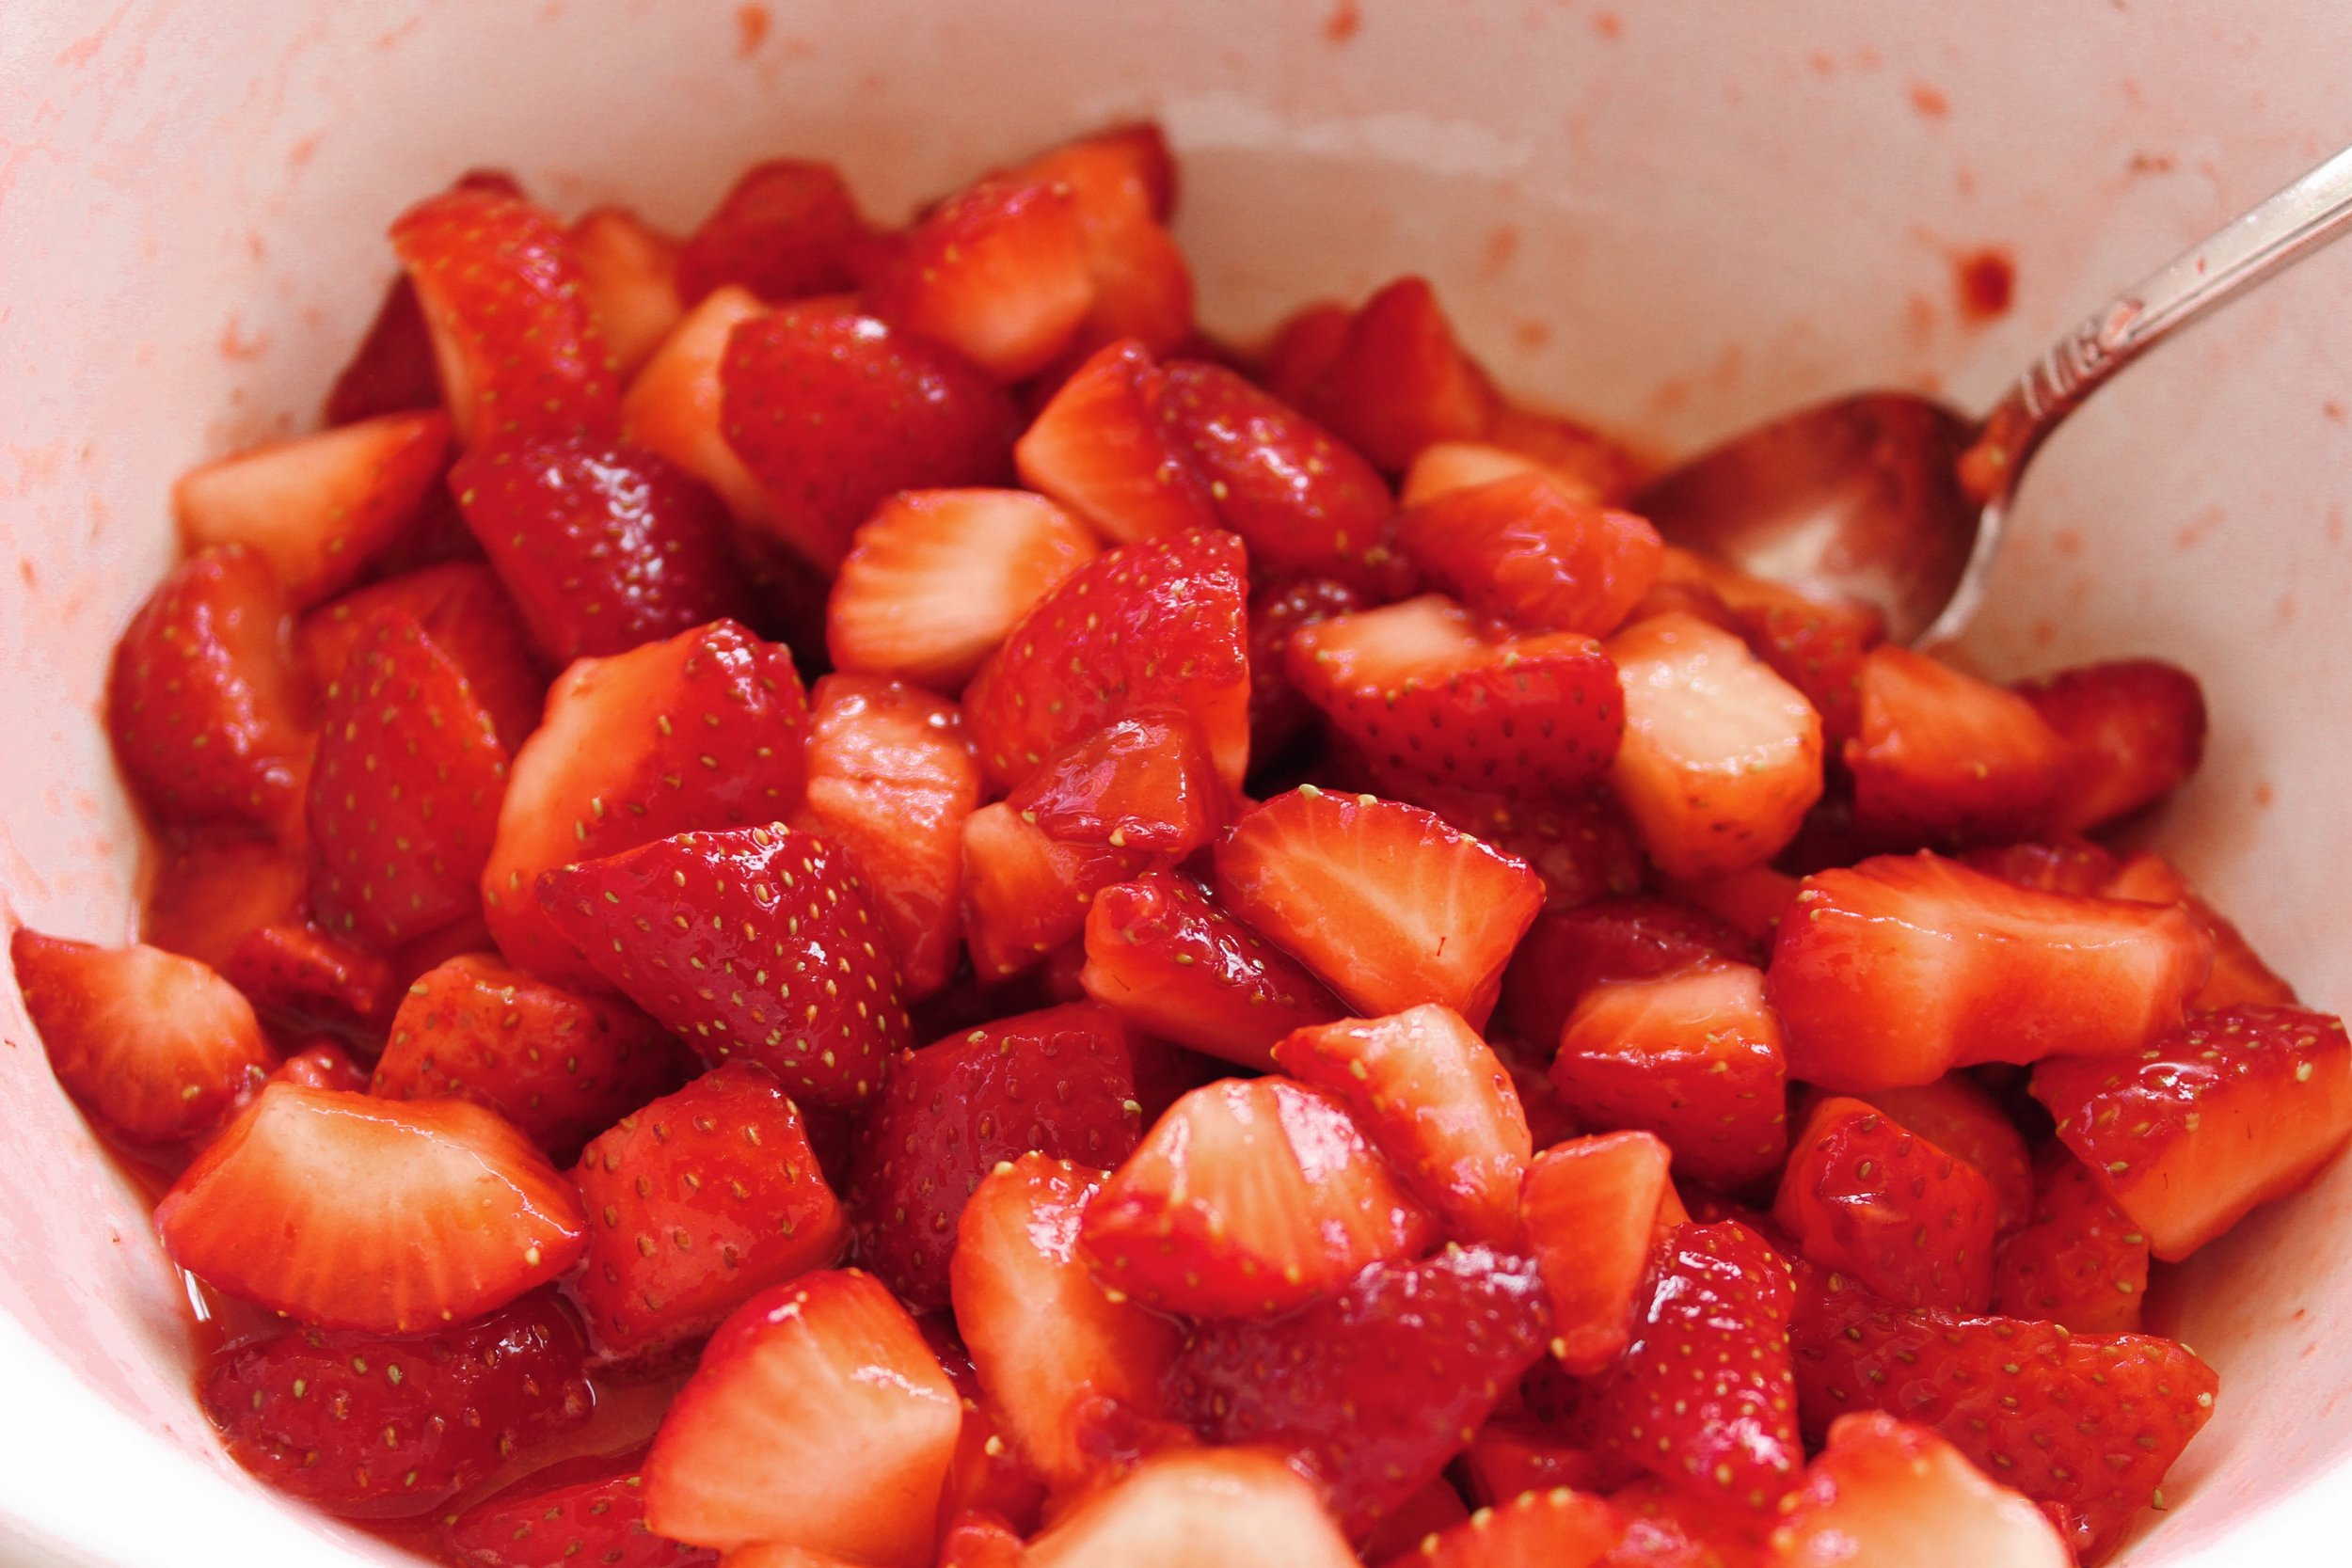 Add lemon juice and superfine sugar to a bowl and mix with the sliced strawberries until completely coated. Cover and place in the refrigerator to stew.